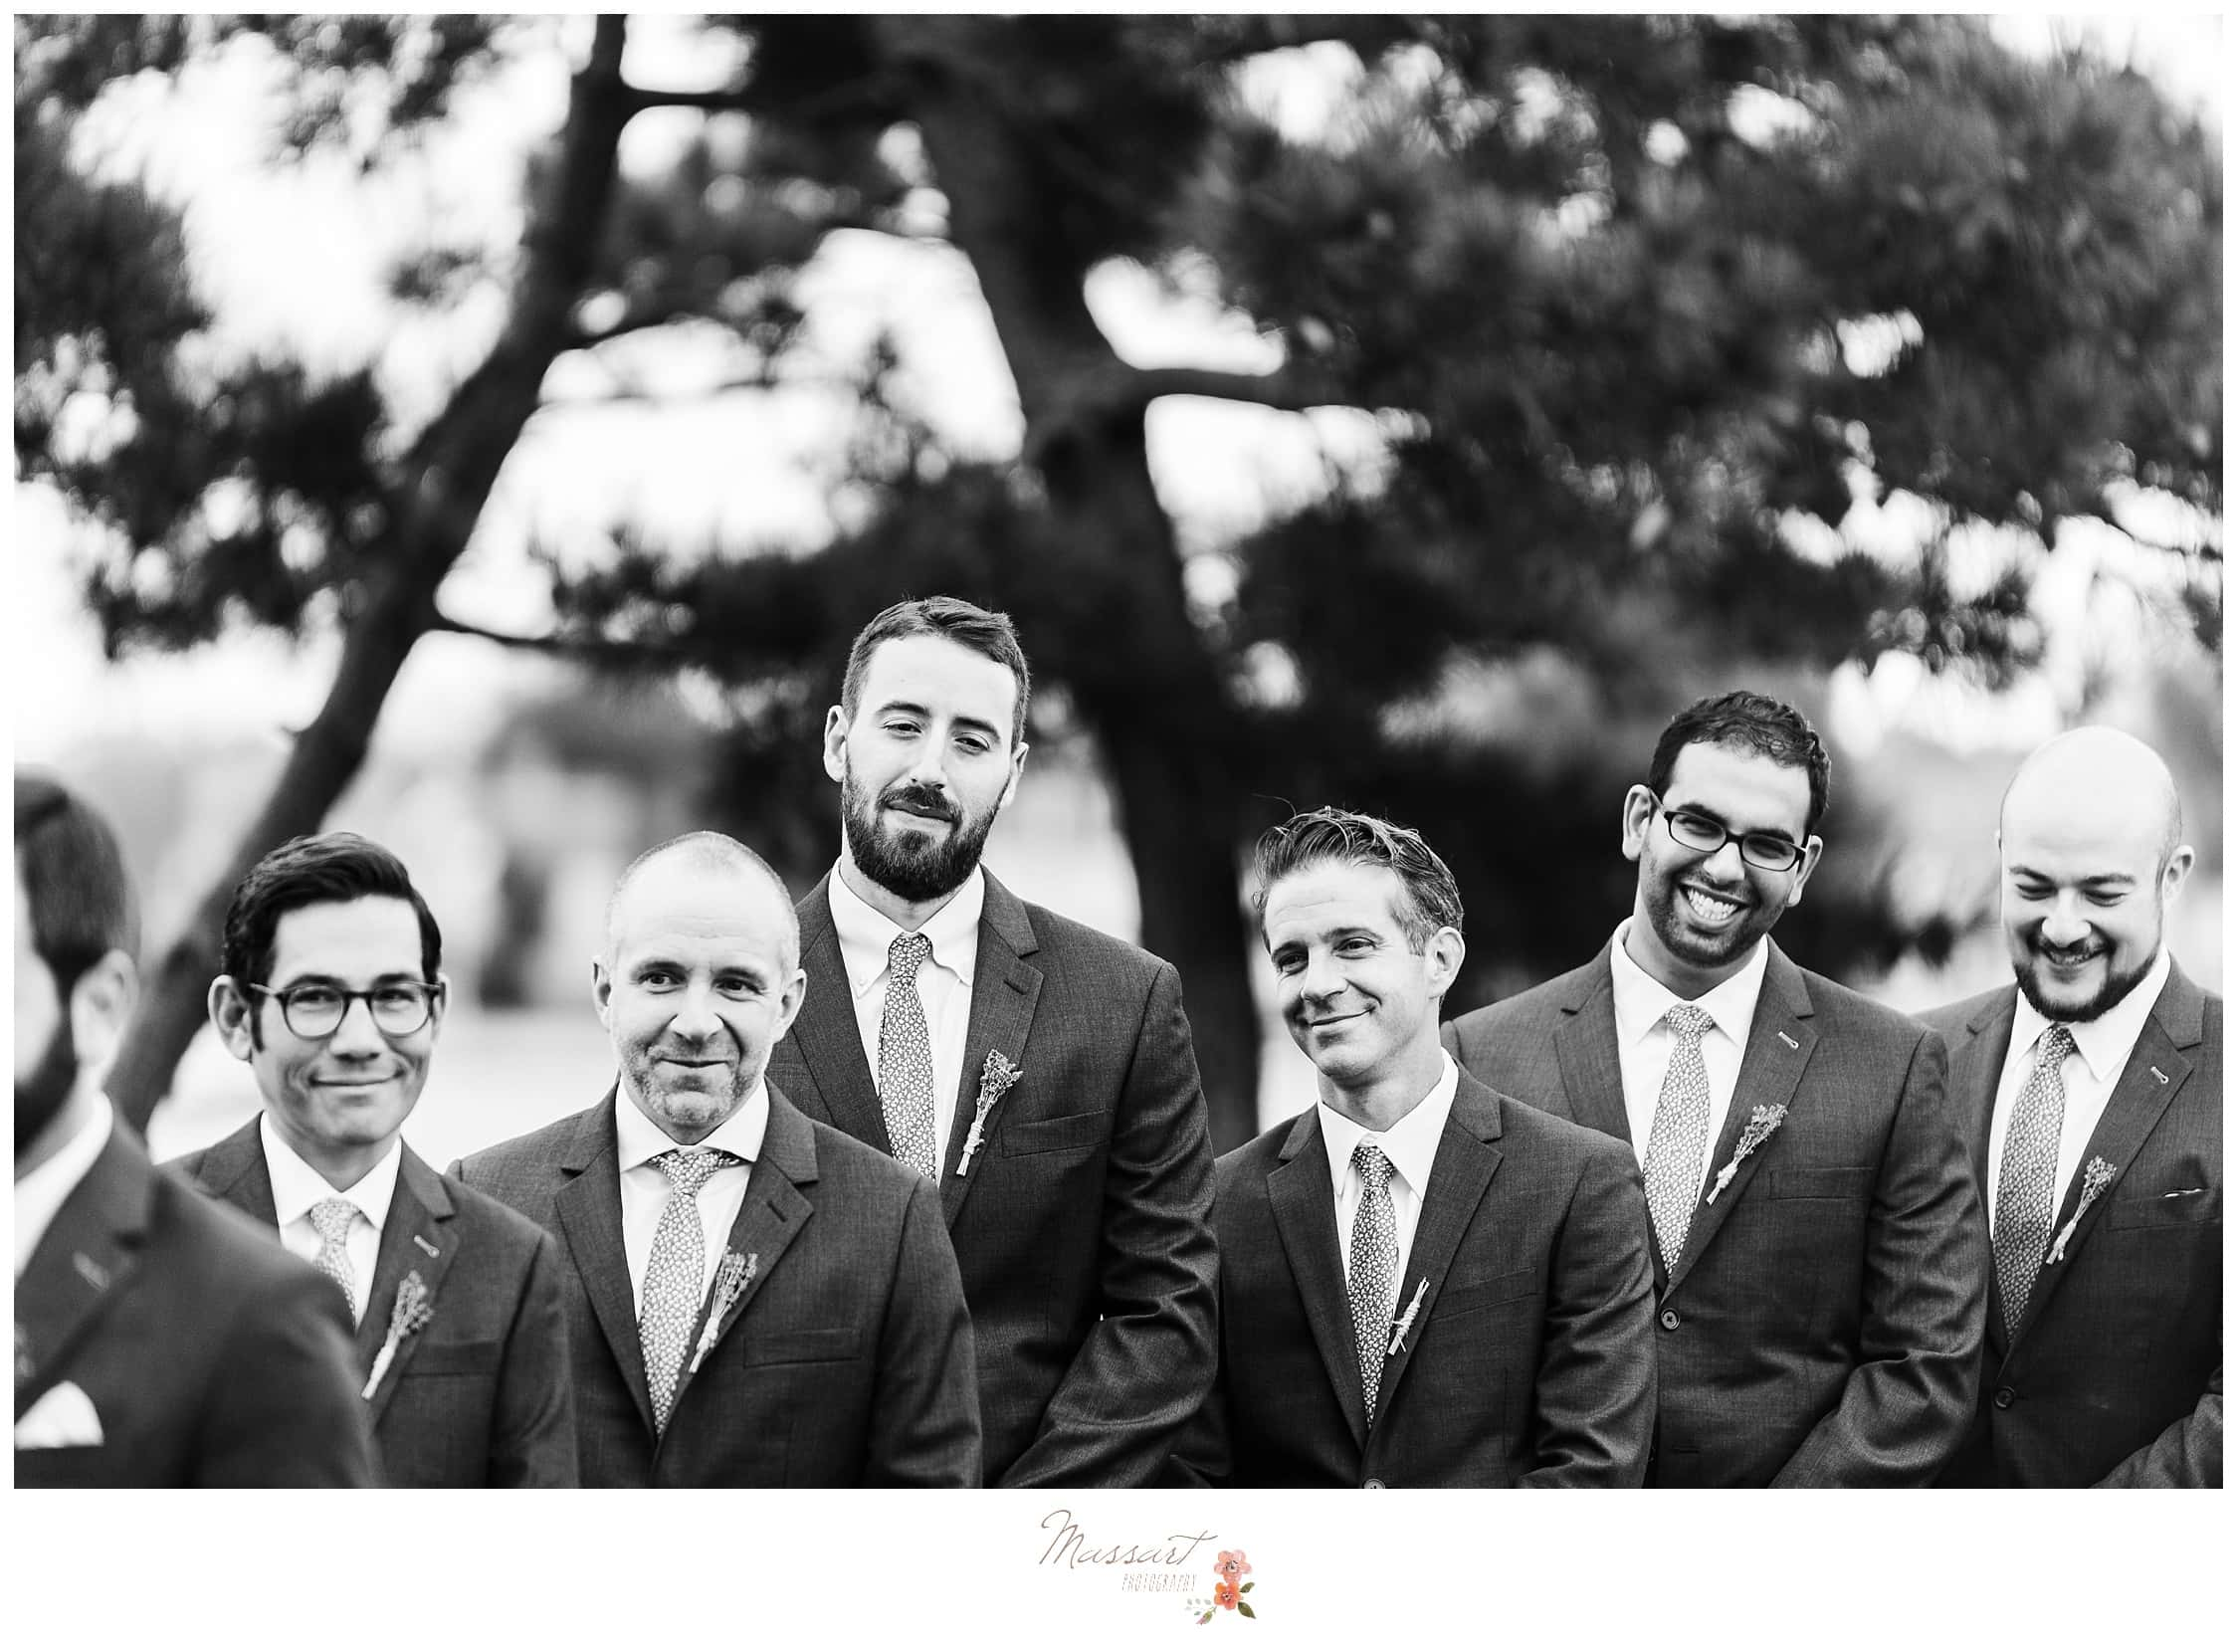 Groomsmen watch the bride and groom getting married photographed by Massart Photography RI